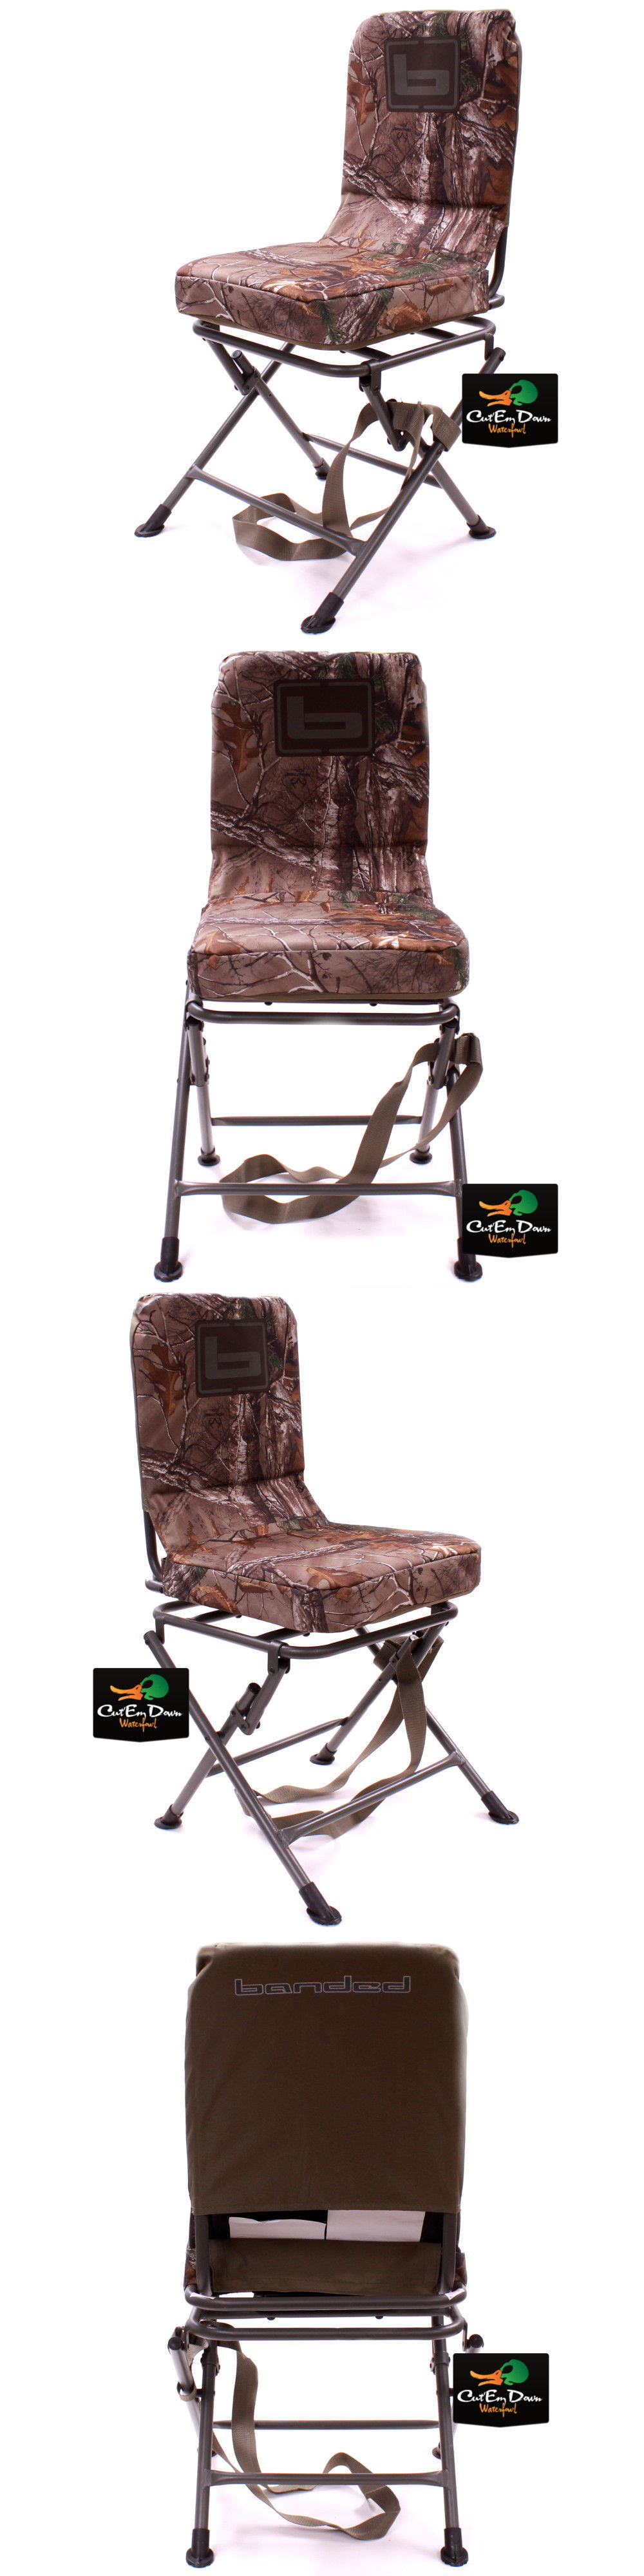 Seats and Chairs New Banded Swivel Blind Chair Padded Seat